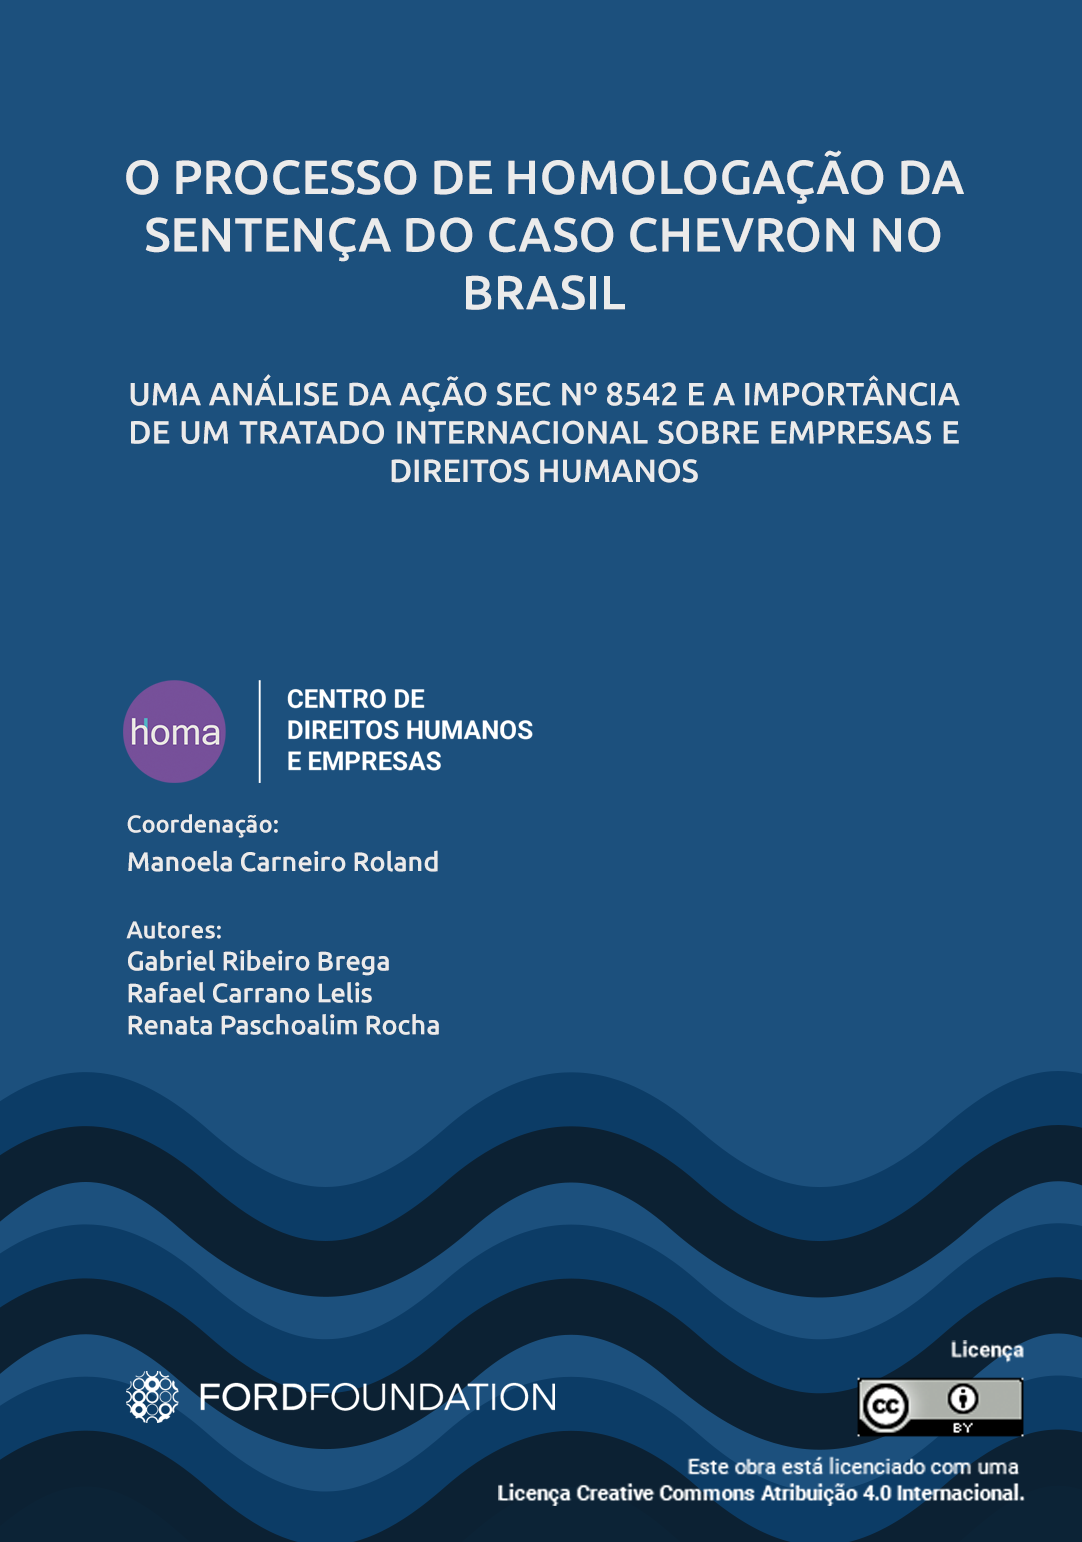 The process of homologation of the judgment of the Chevron Case in Brazil: an analysis of SEC Action No. 8542 and the importance of an International Treaty on Business and Human Rights